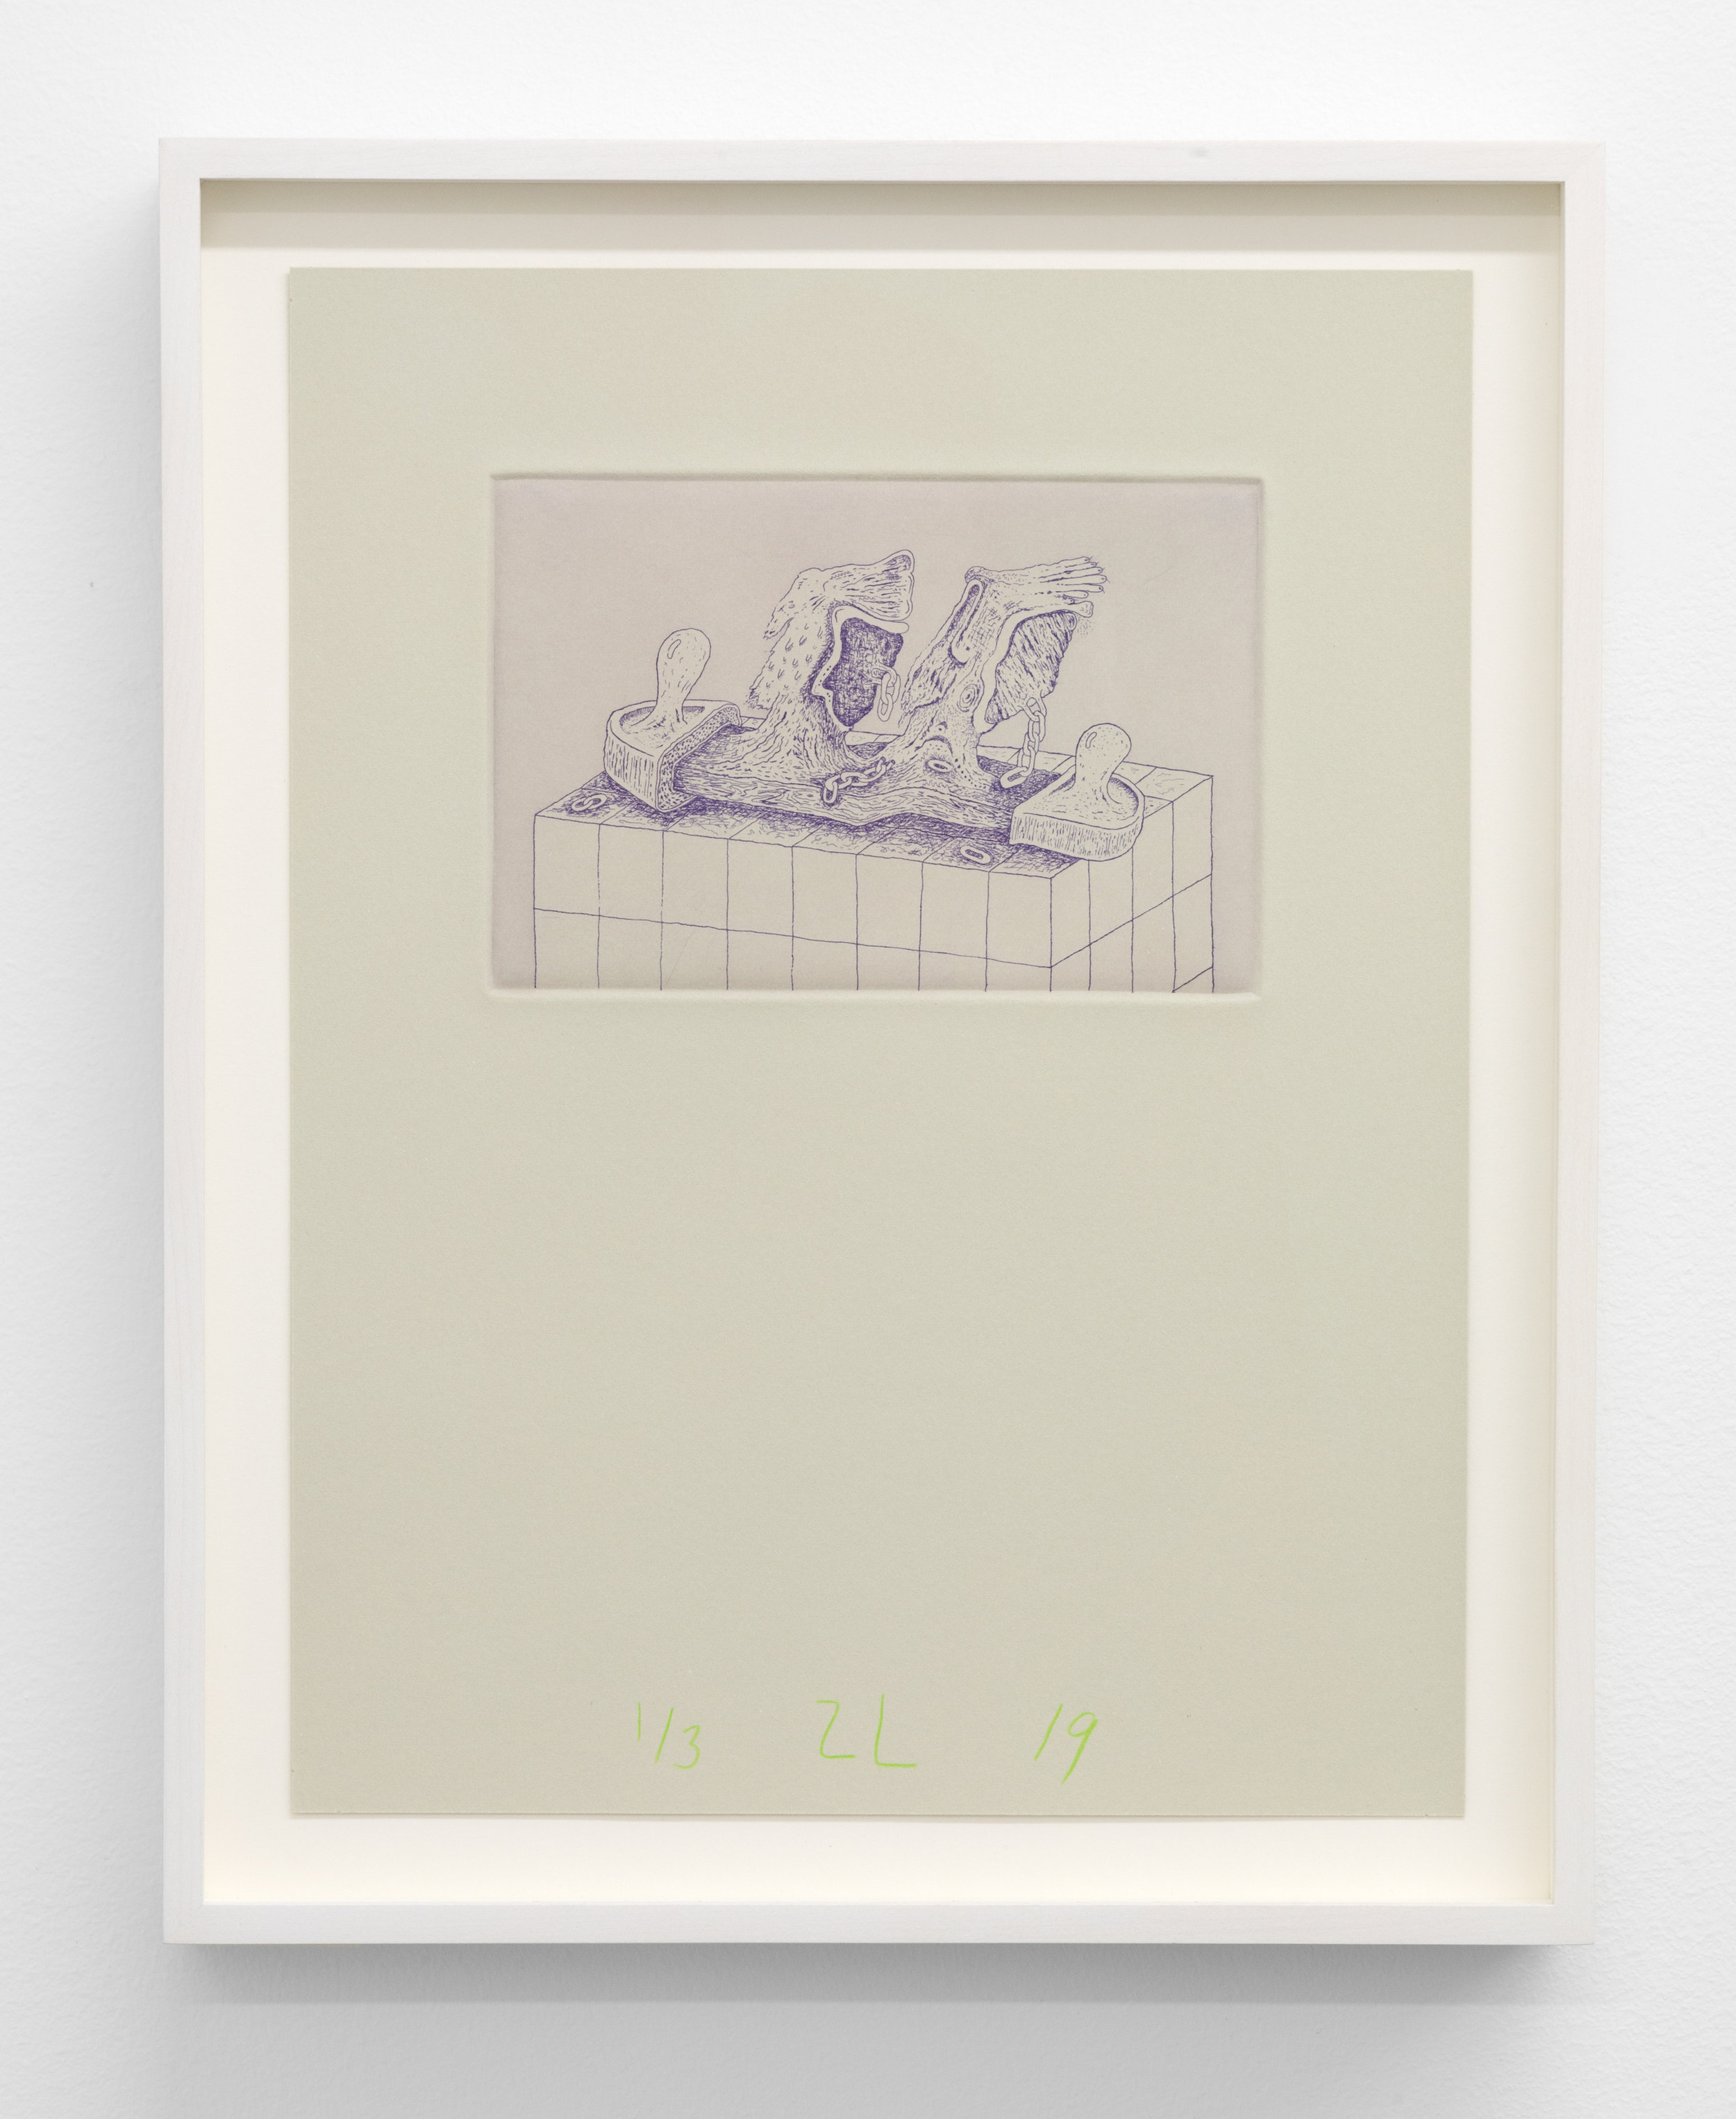 Zachary Leener,  Shekinta (Finger) , 2019 Edition of 3 + 1 AP, Etching and aquatint, ink on paper 6 x 4 in